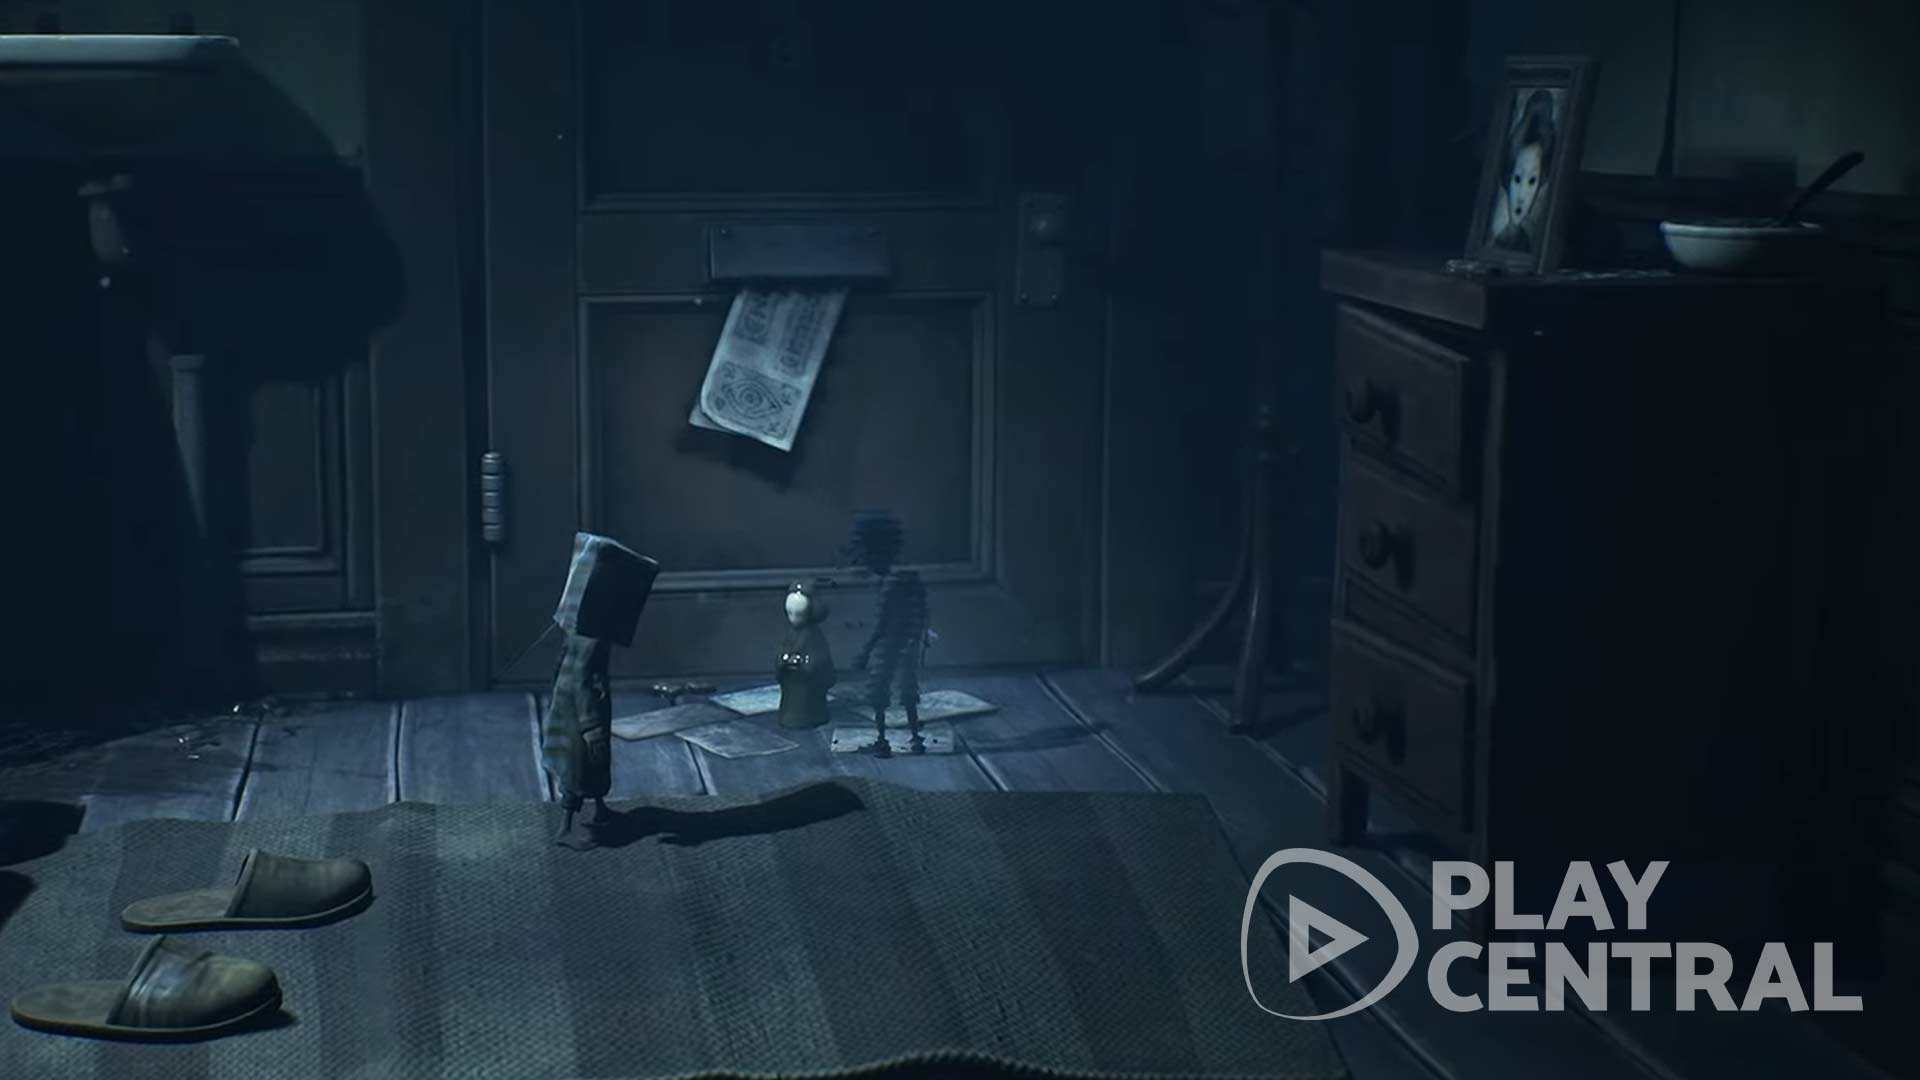 Little Nightmares 2: Fragmentierte Überreste / Glitching Remains 18